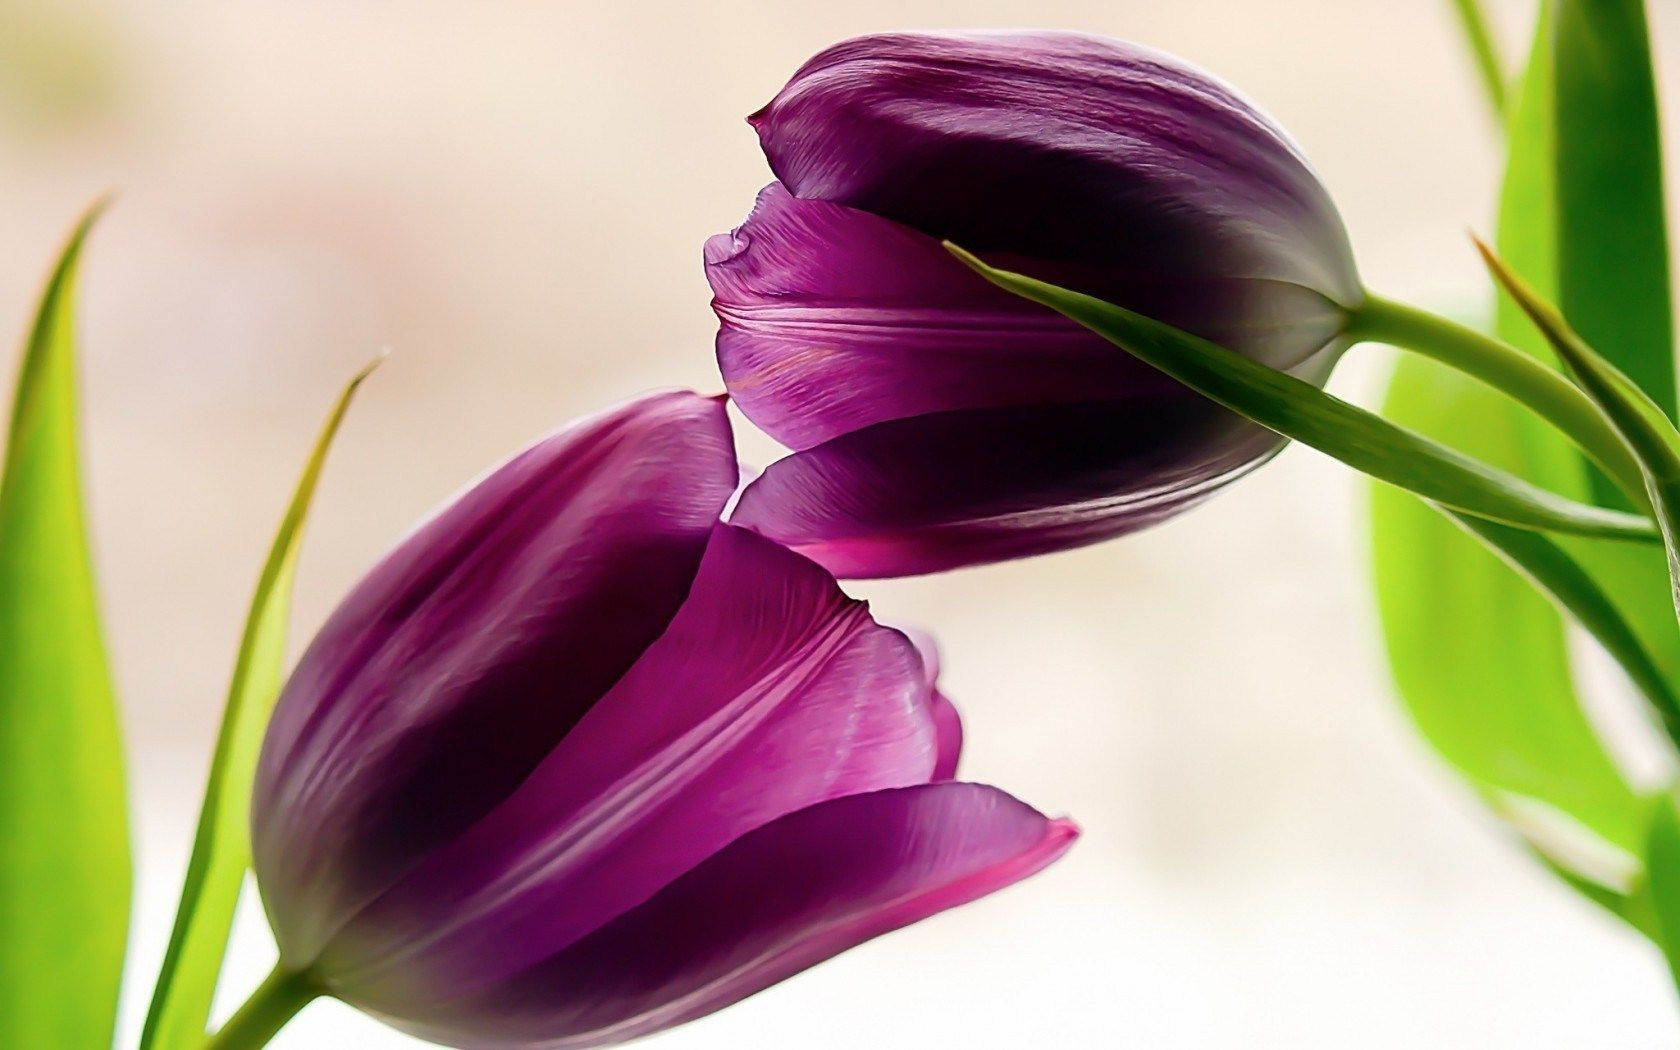 Two Purple Tulip Flower Wallpaper Is A Hd Wallpaper Posted In Tulip Flower Category You Can Download Free Covers Created From Or Tulips Flowers Flowers Tulips